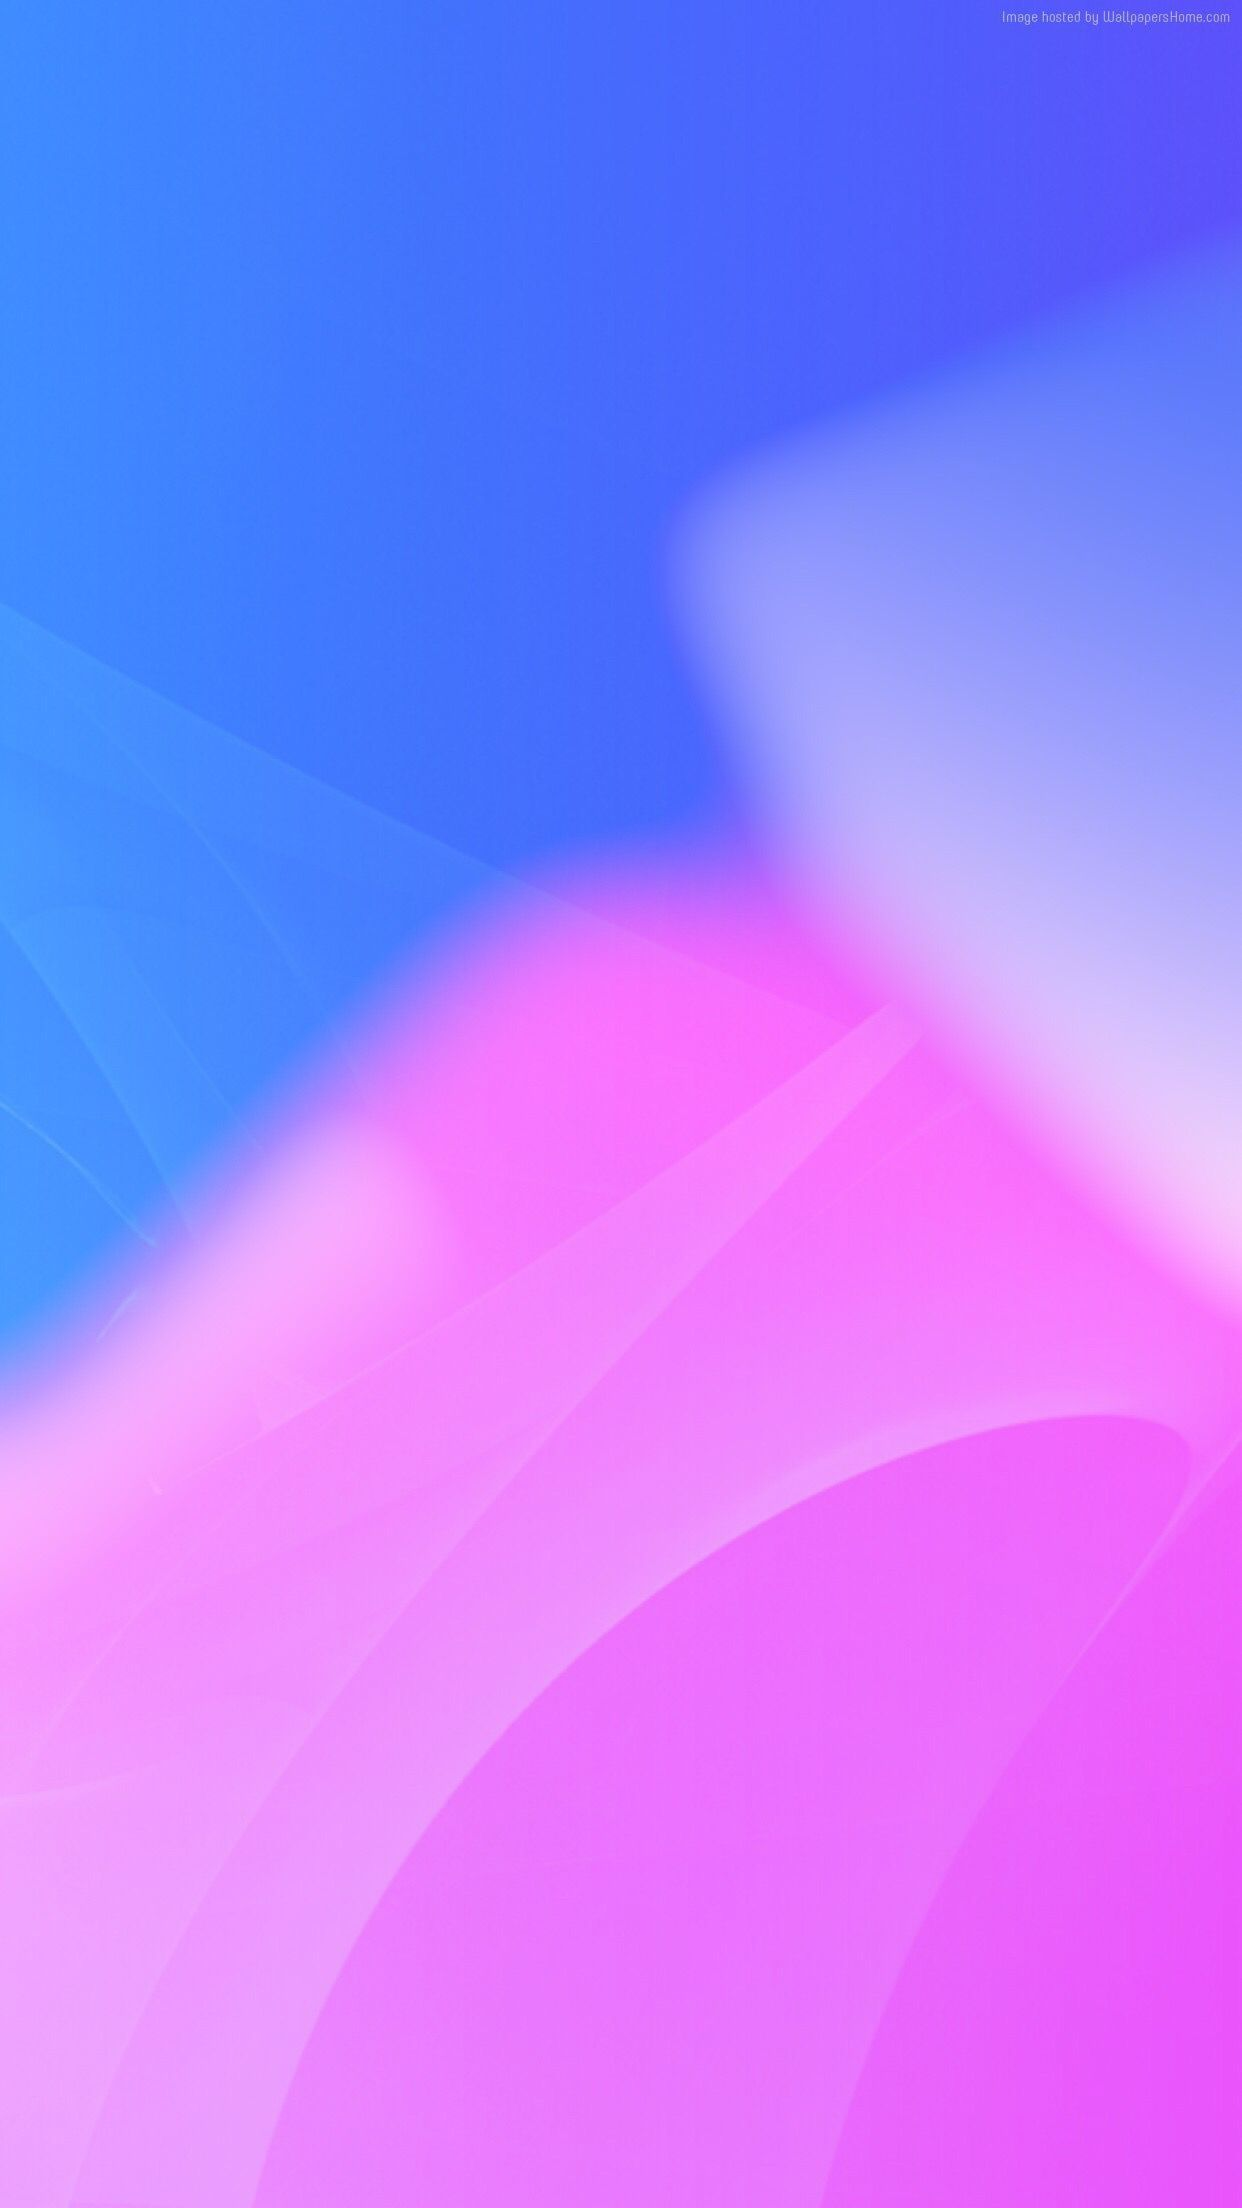 iOS 11, pink, blue, abstract, apple, wallpaper, iPhone x